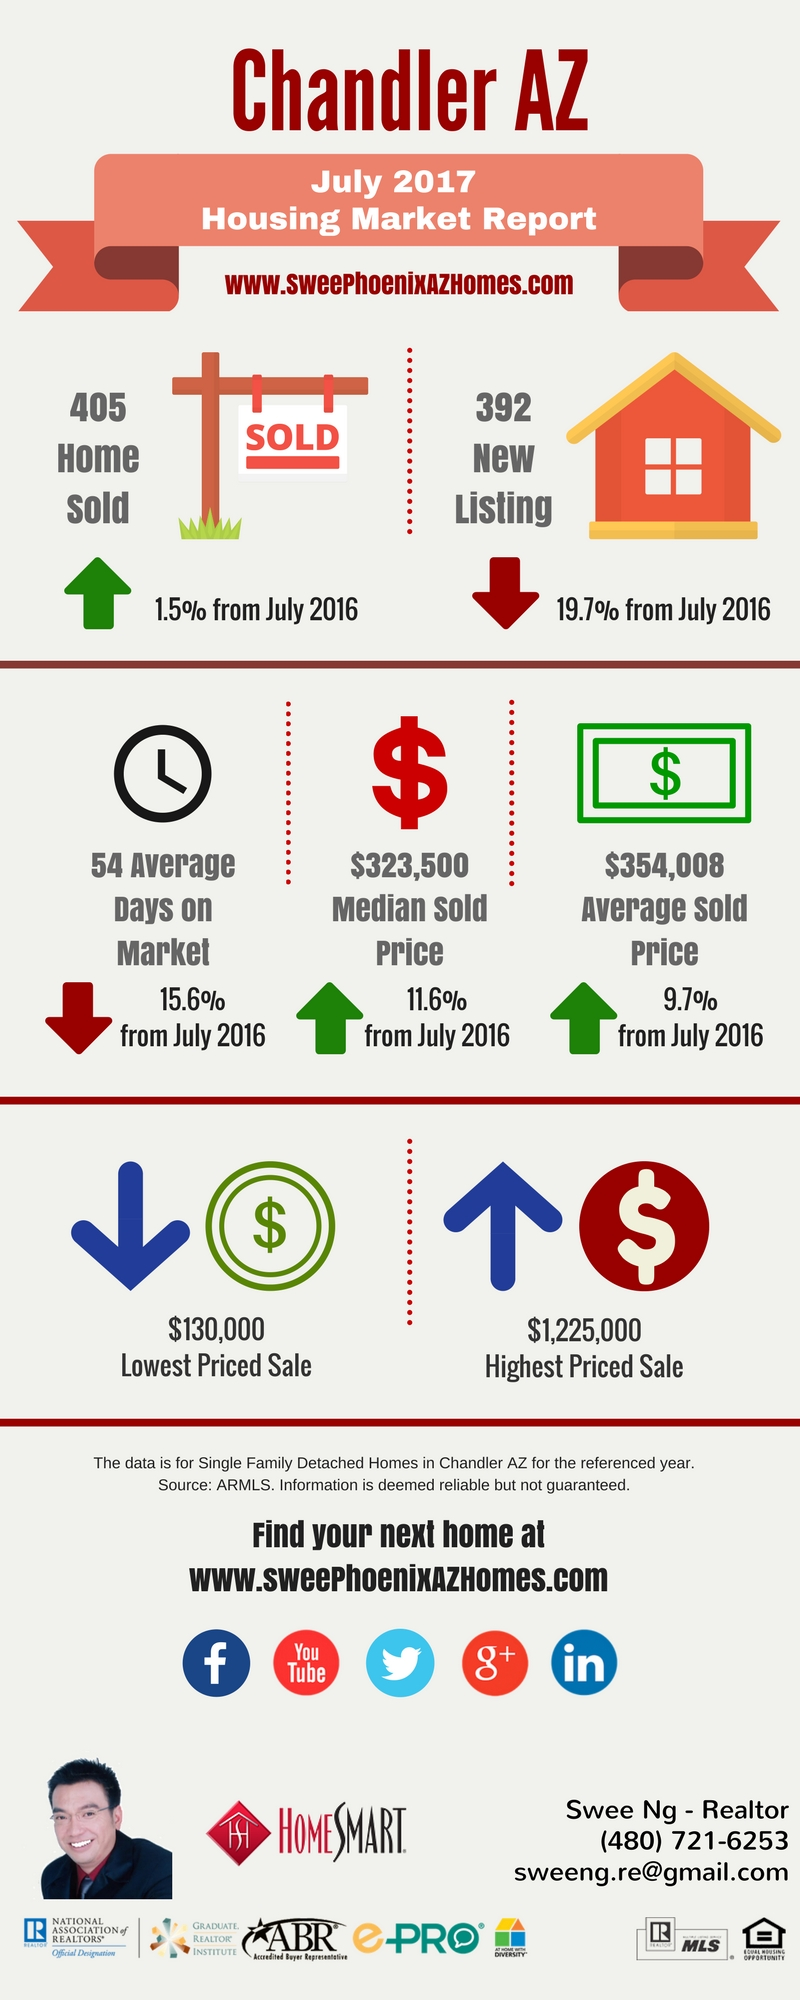 Chandler AZ Housing Market Update July 2017 by Swee Ng, House Value and Real Estate Listings